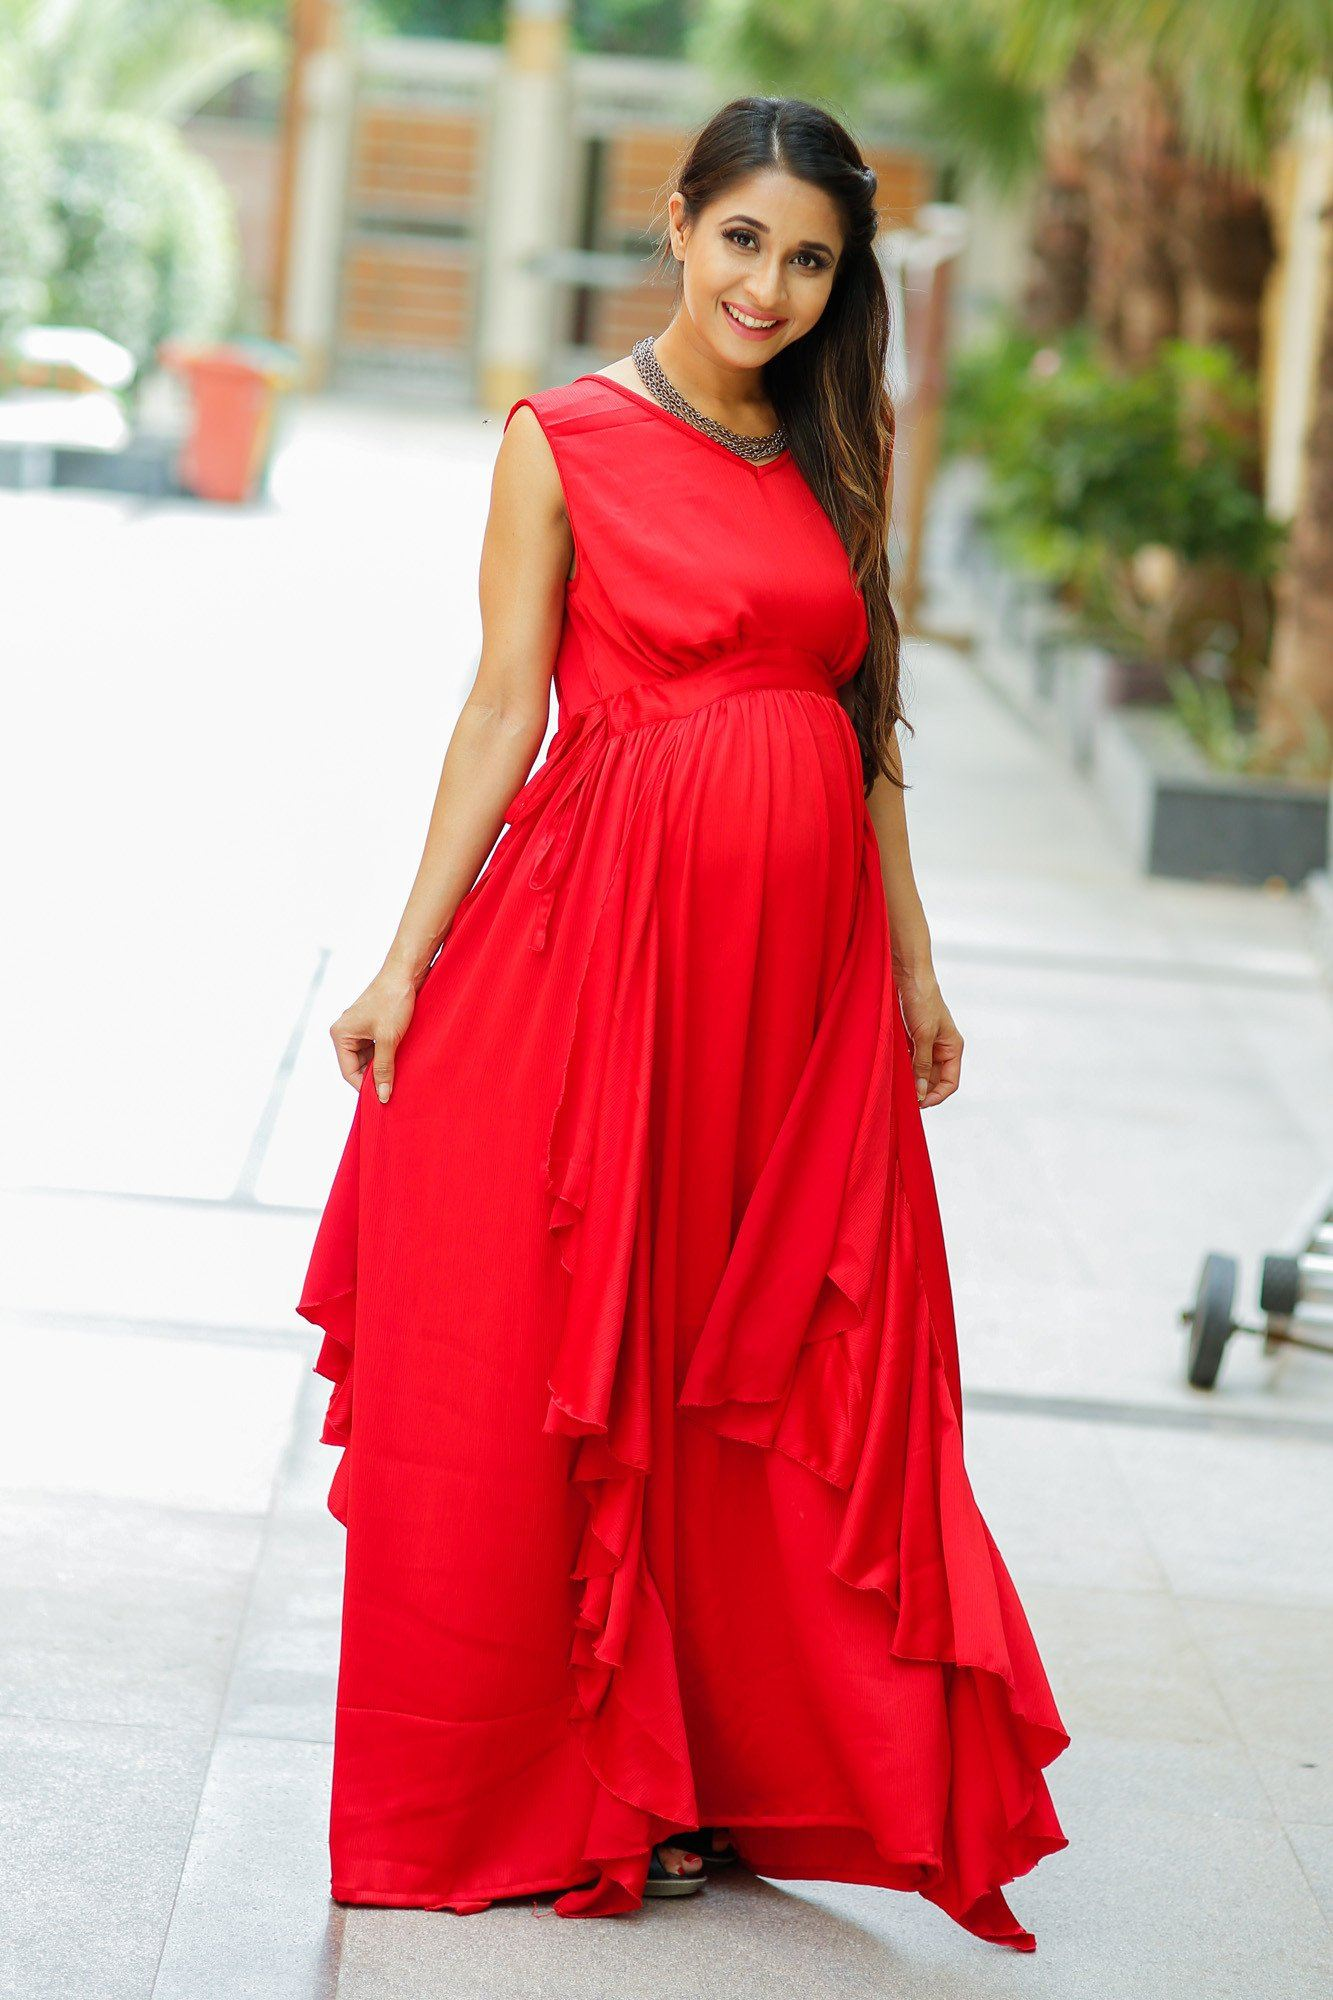 Buy online momzjoy maternity dresses pregnancy wear nursing clothes luxe candy red bubble georgette maternity dress ombrellifo Images